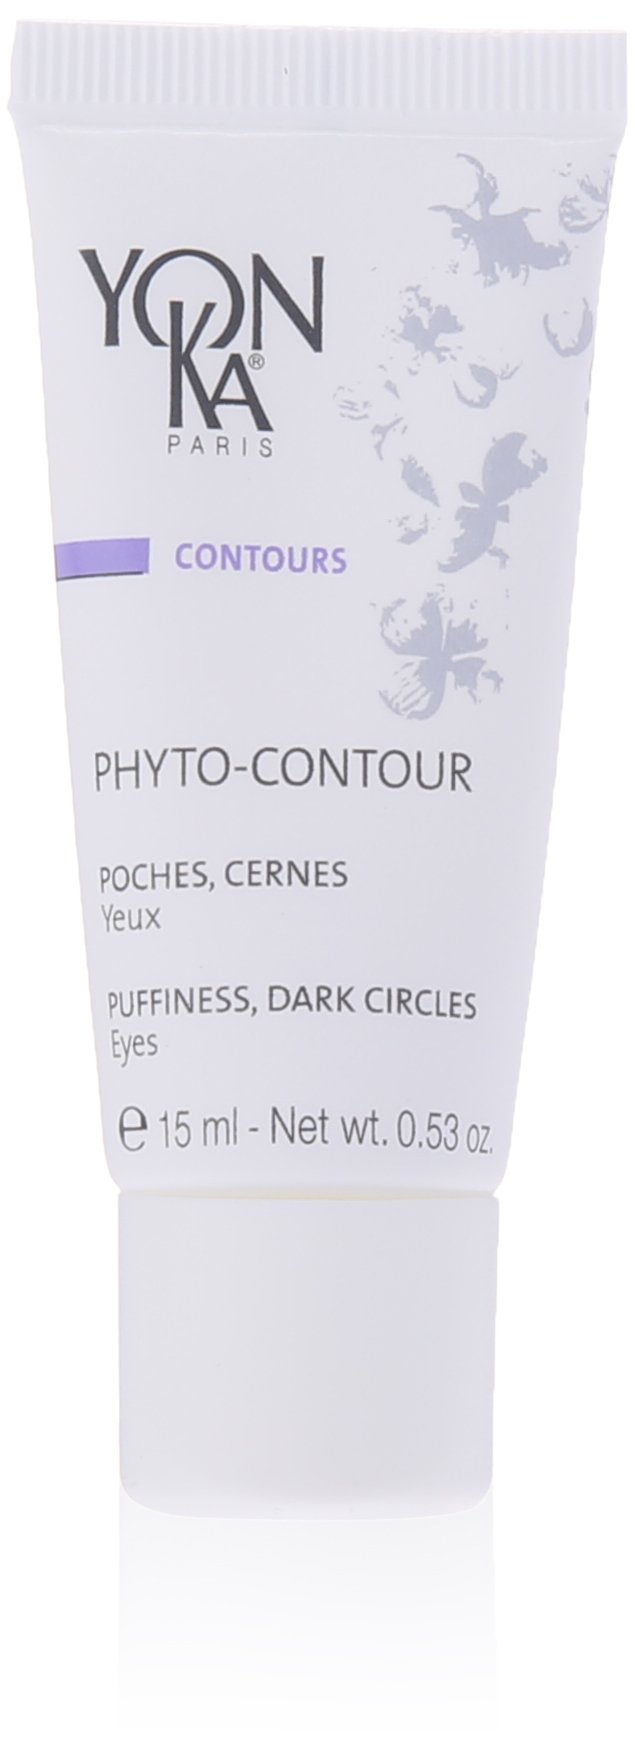 YON-KA CONTOURS PHYTO-CONTOUR - Eye Contour Cream to Combat Puffiness and Dark Circles (0.5 Ounce/15 Milliliter)